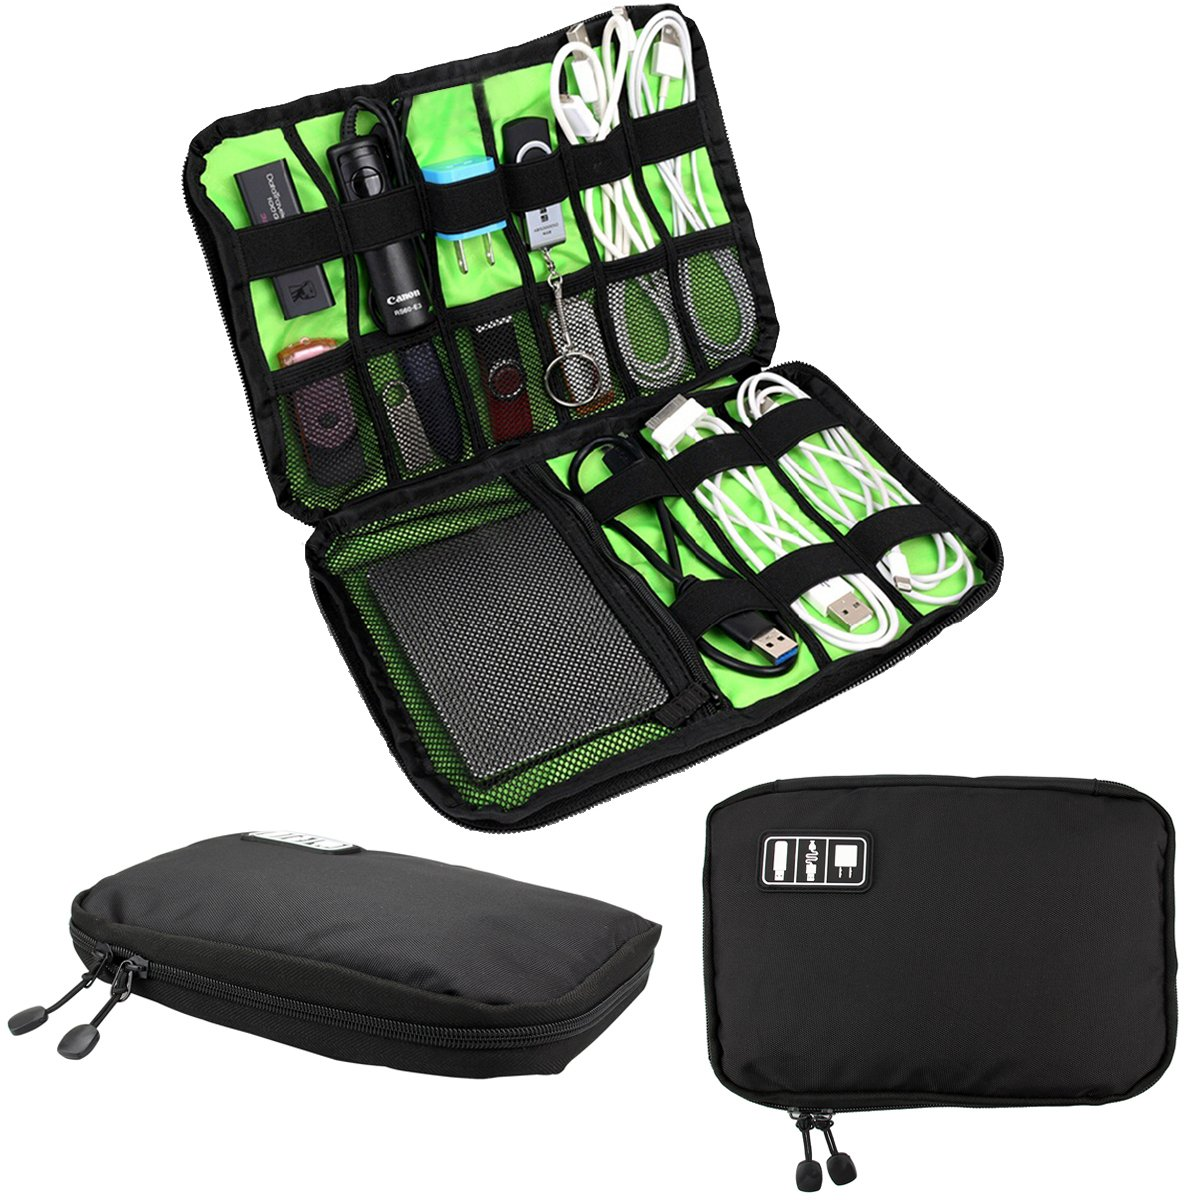 RRunzfon Cable Organizer , Electronics Accessories Travel Bag, Hard Drive Case for USB ,Phone Charger, Charging Cable, Power Bank carry case